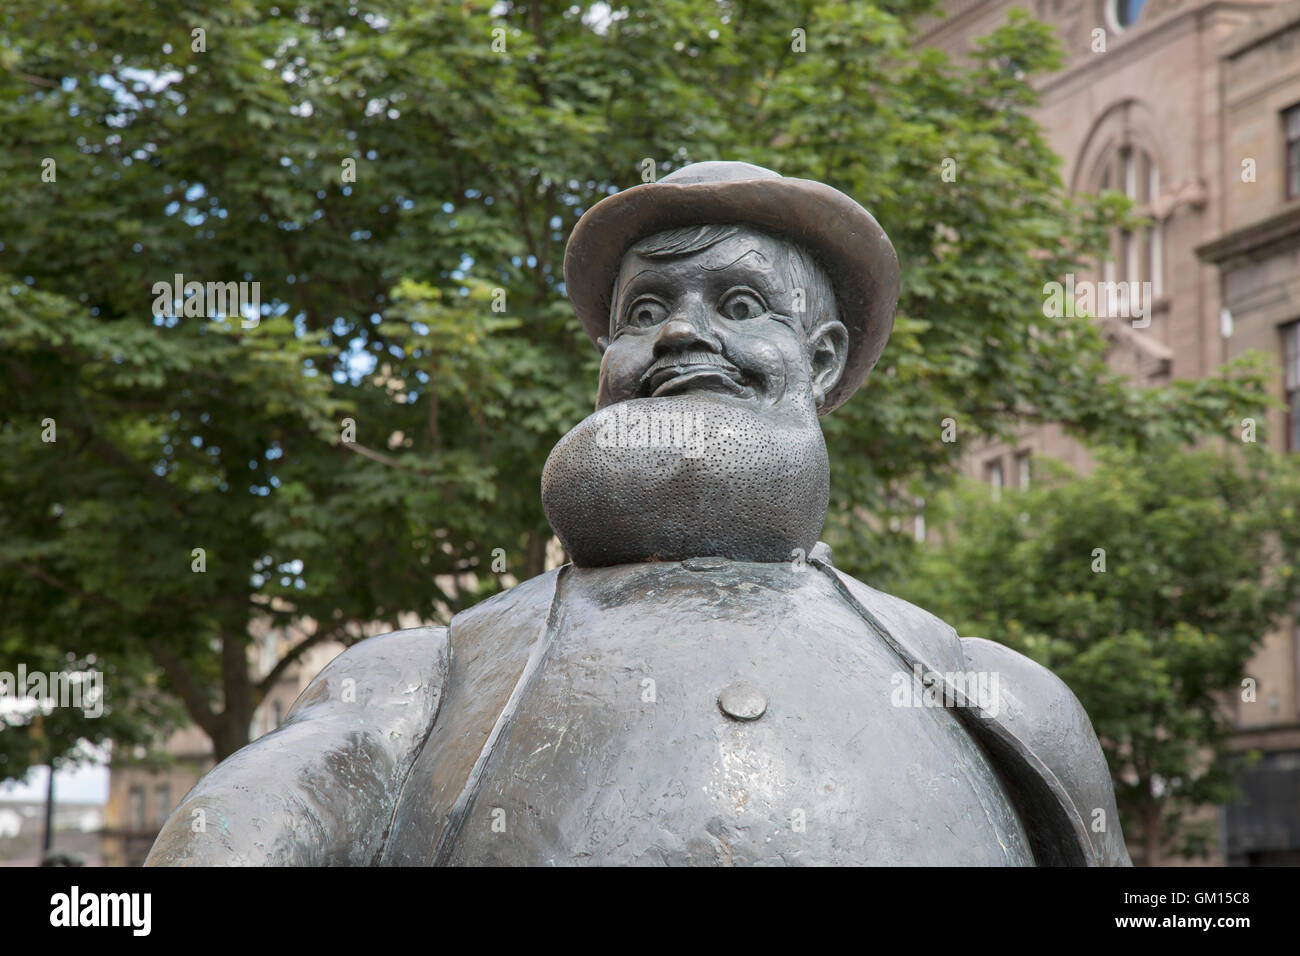 Statue of Desperate Dan from the Dandy Comic, City Square, Dundee, Scotland, UK - Stock Image